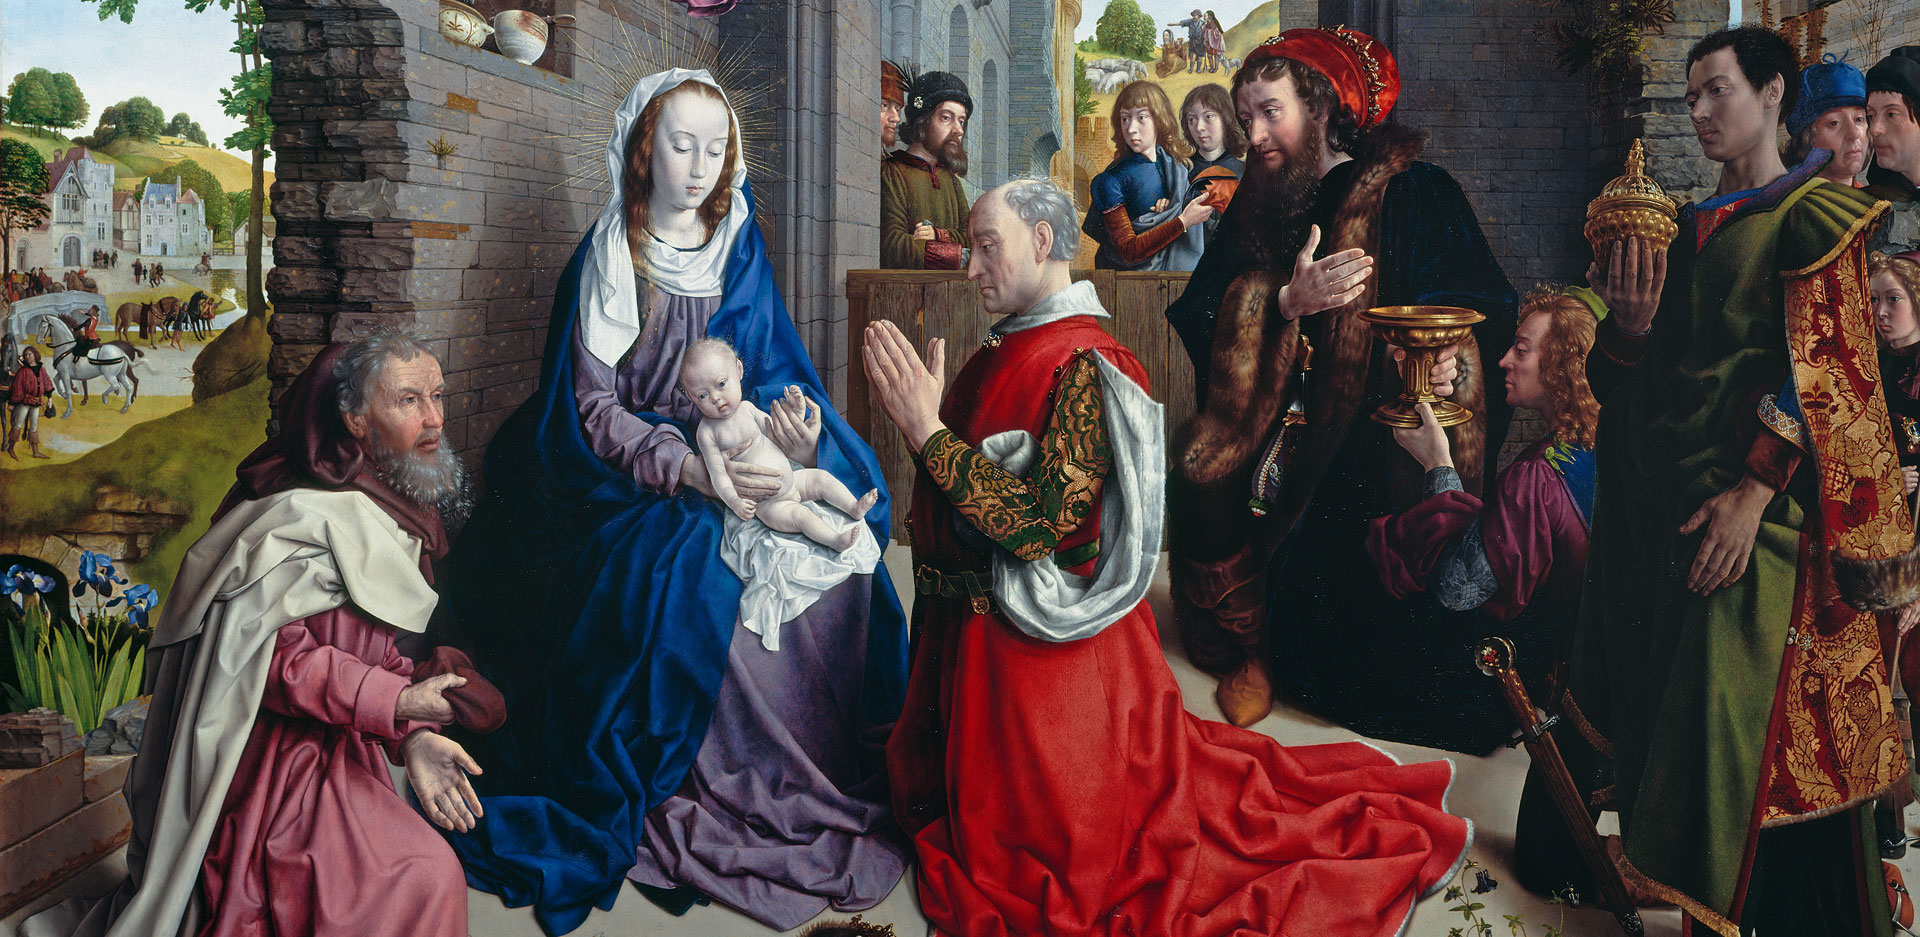 On view is: Hugo van der Goes: The Adoration of the Kings, detail, part of the Monforte Altar, around 1470.